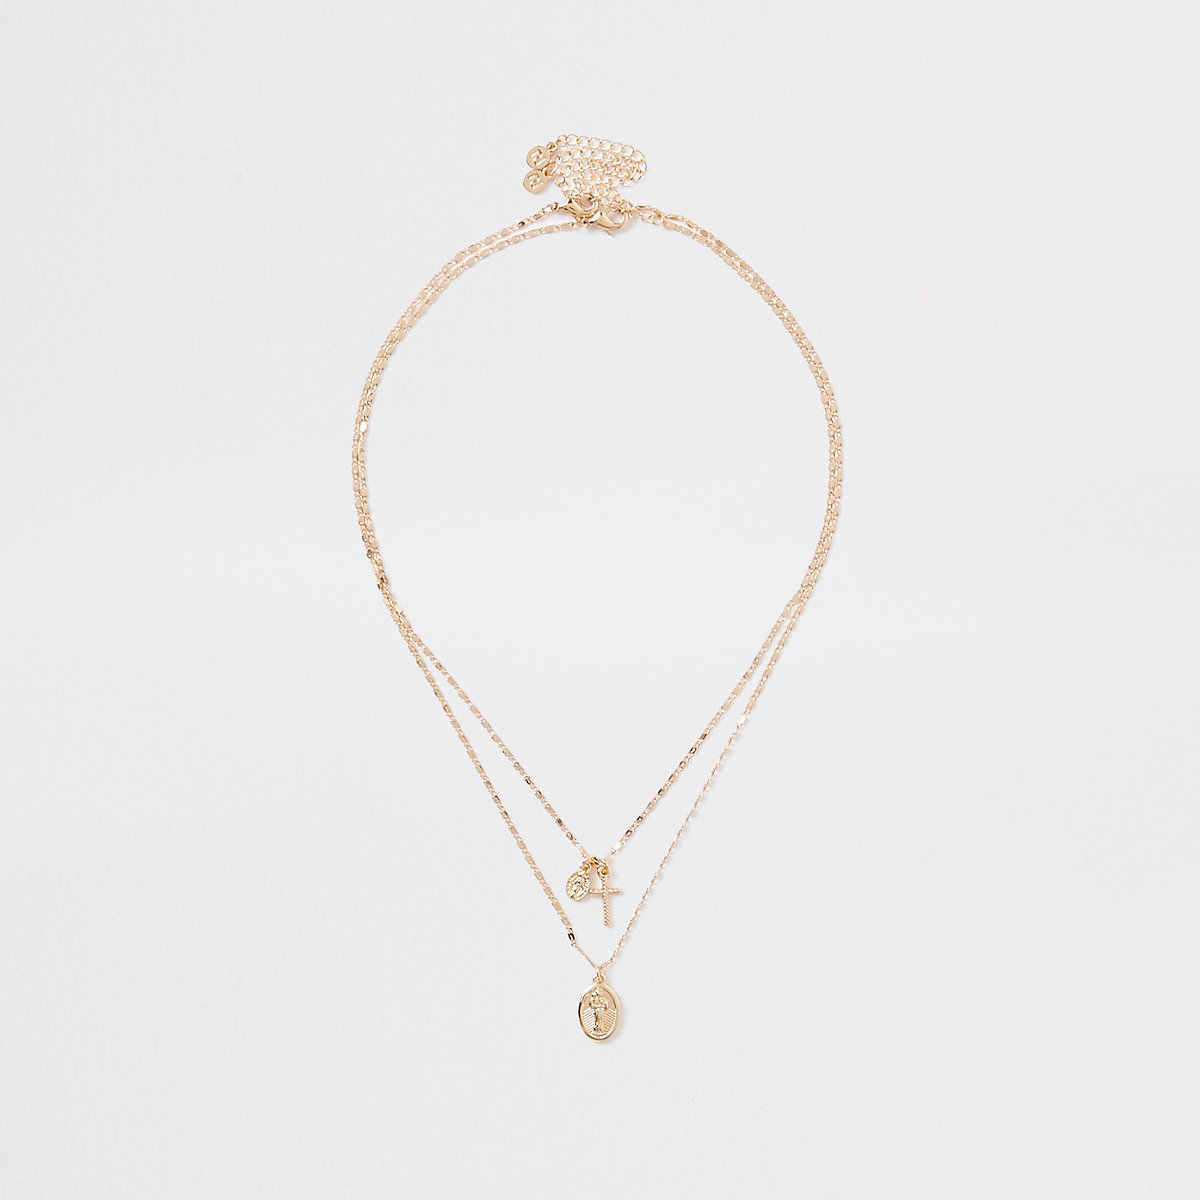 Gold color layered charm necklace